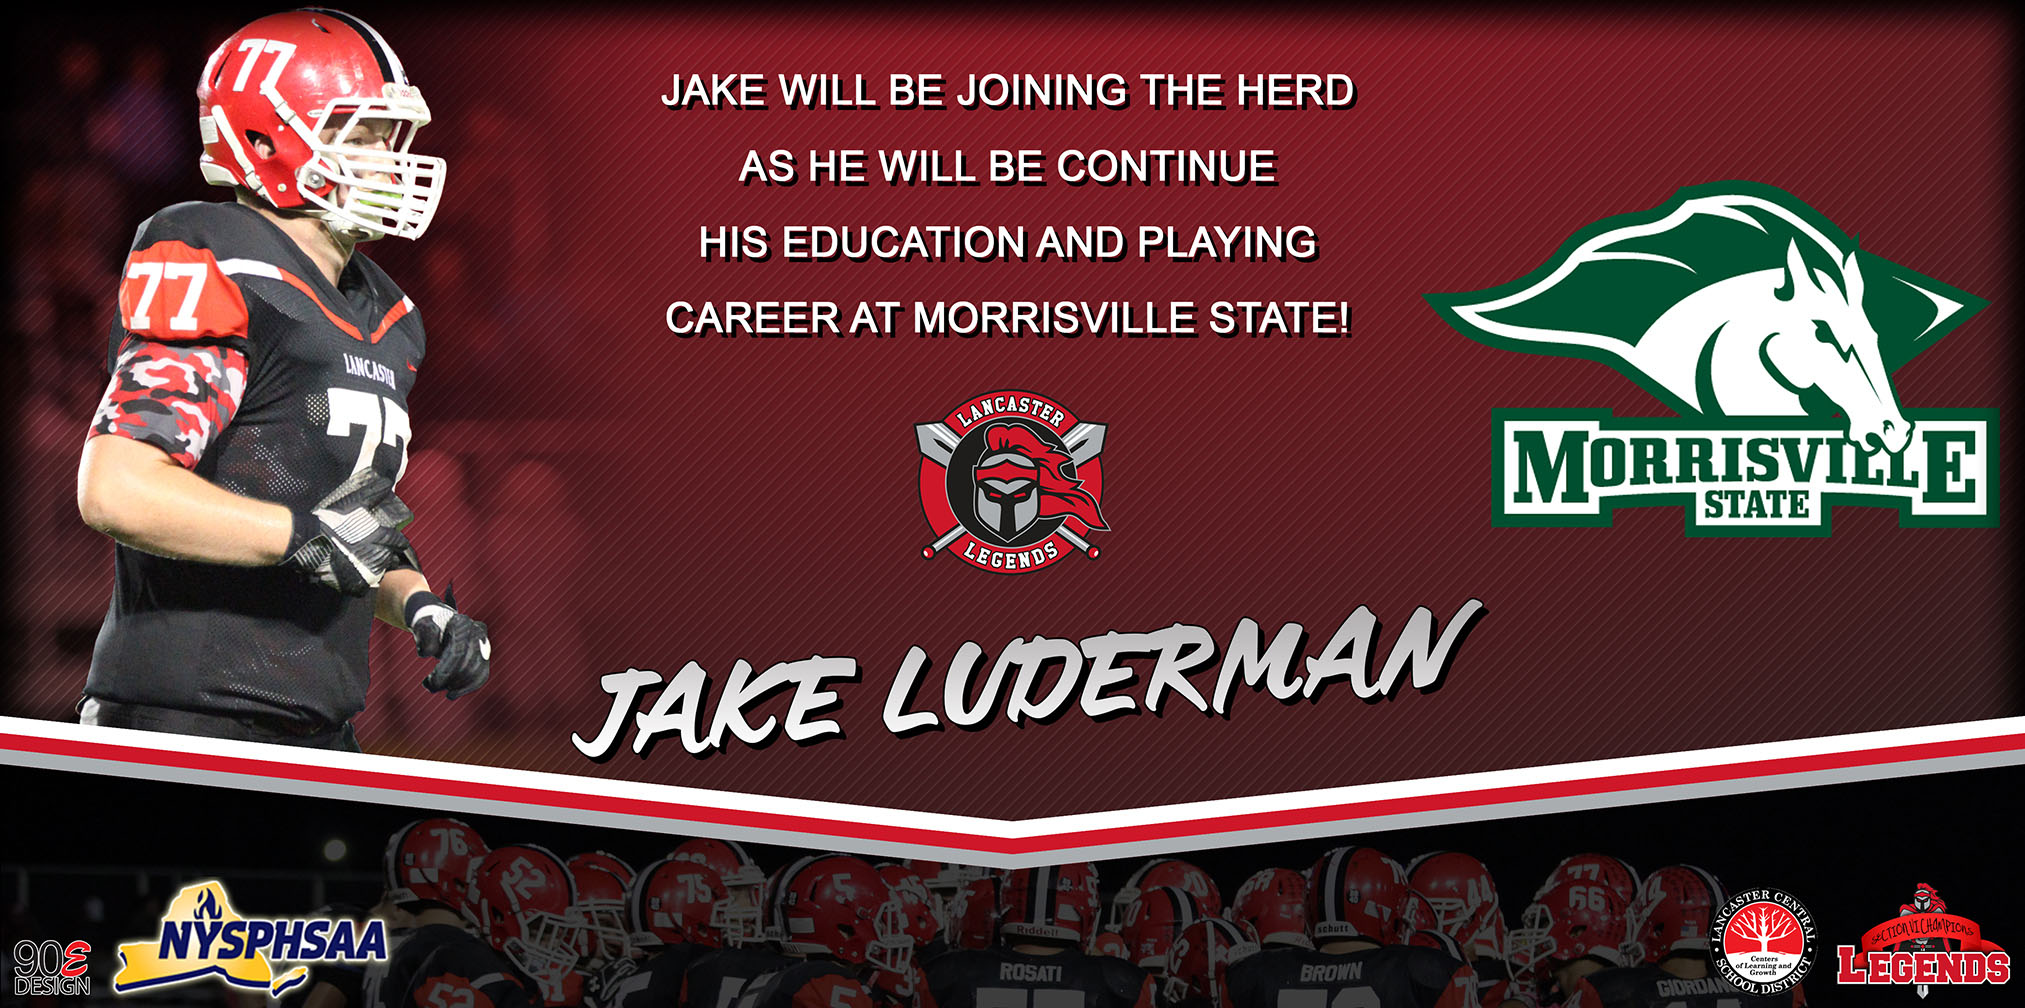 Lancaster Football Jake Luderman on his way to Morrisville State College